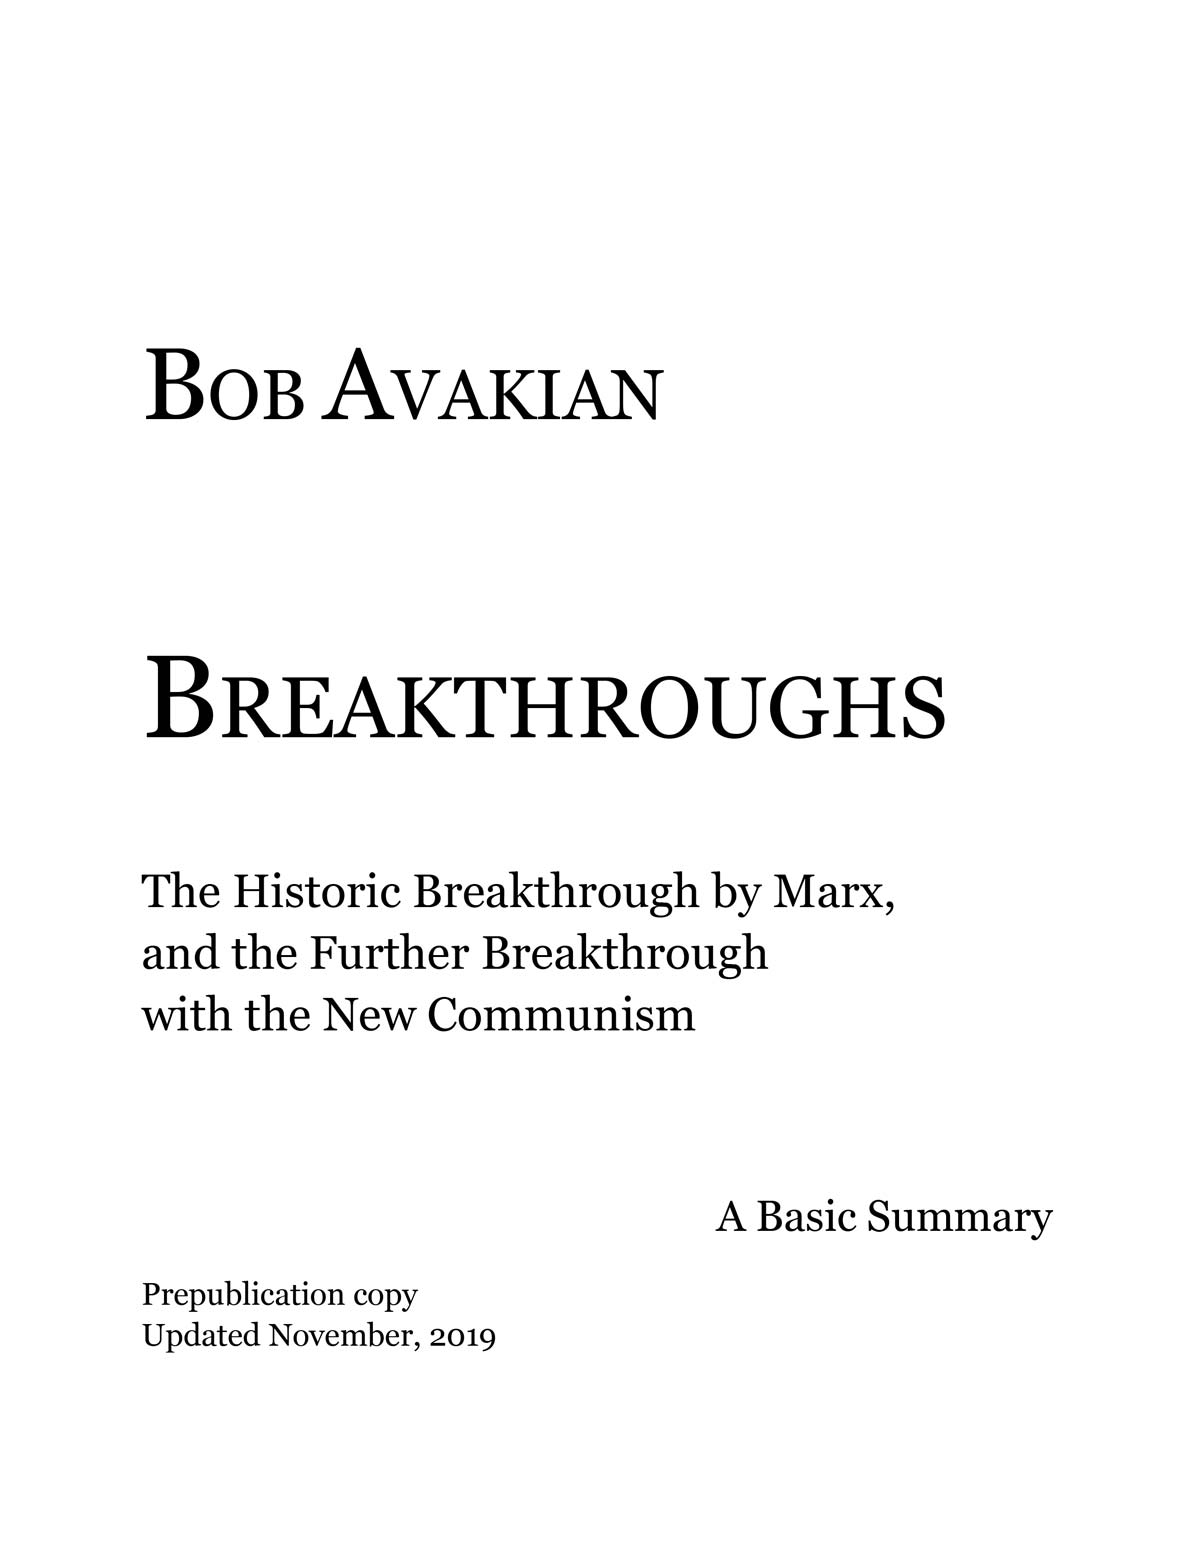 BOB AVAKIAN The Vision, the Works, the Leadership for a New